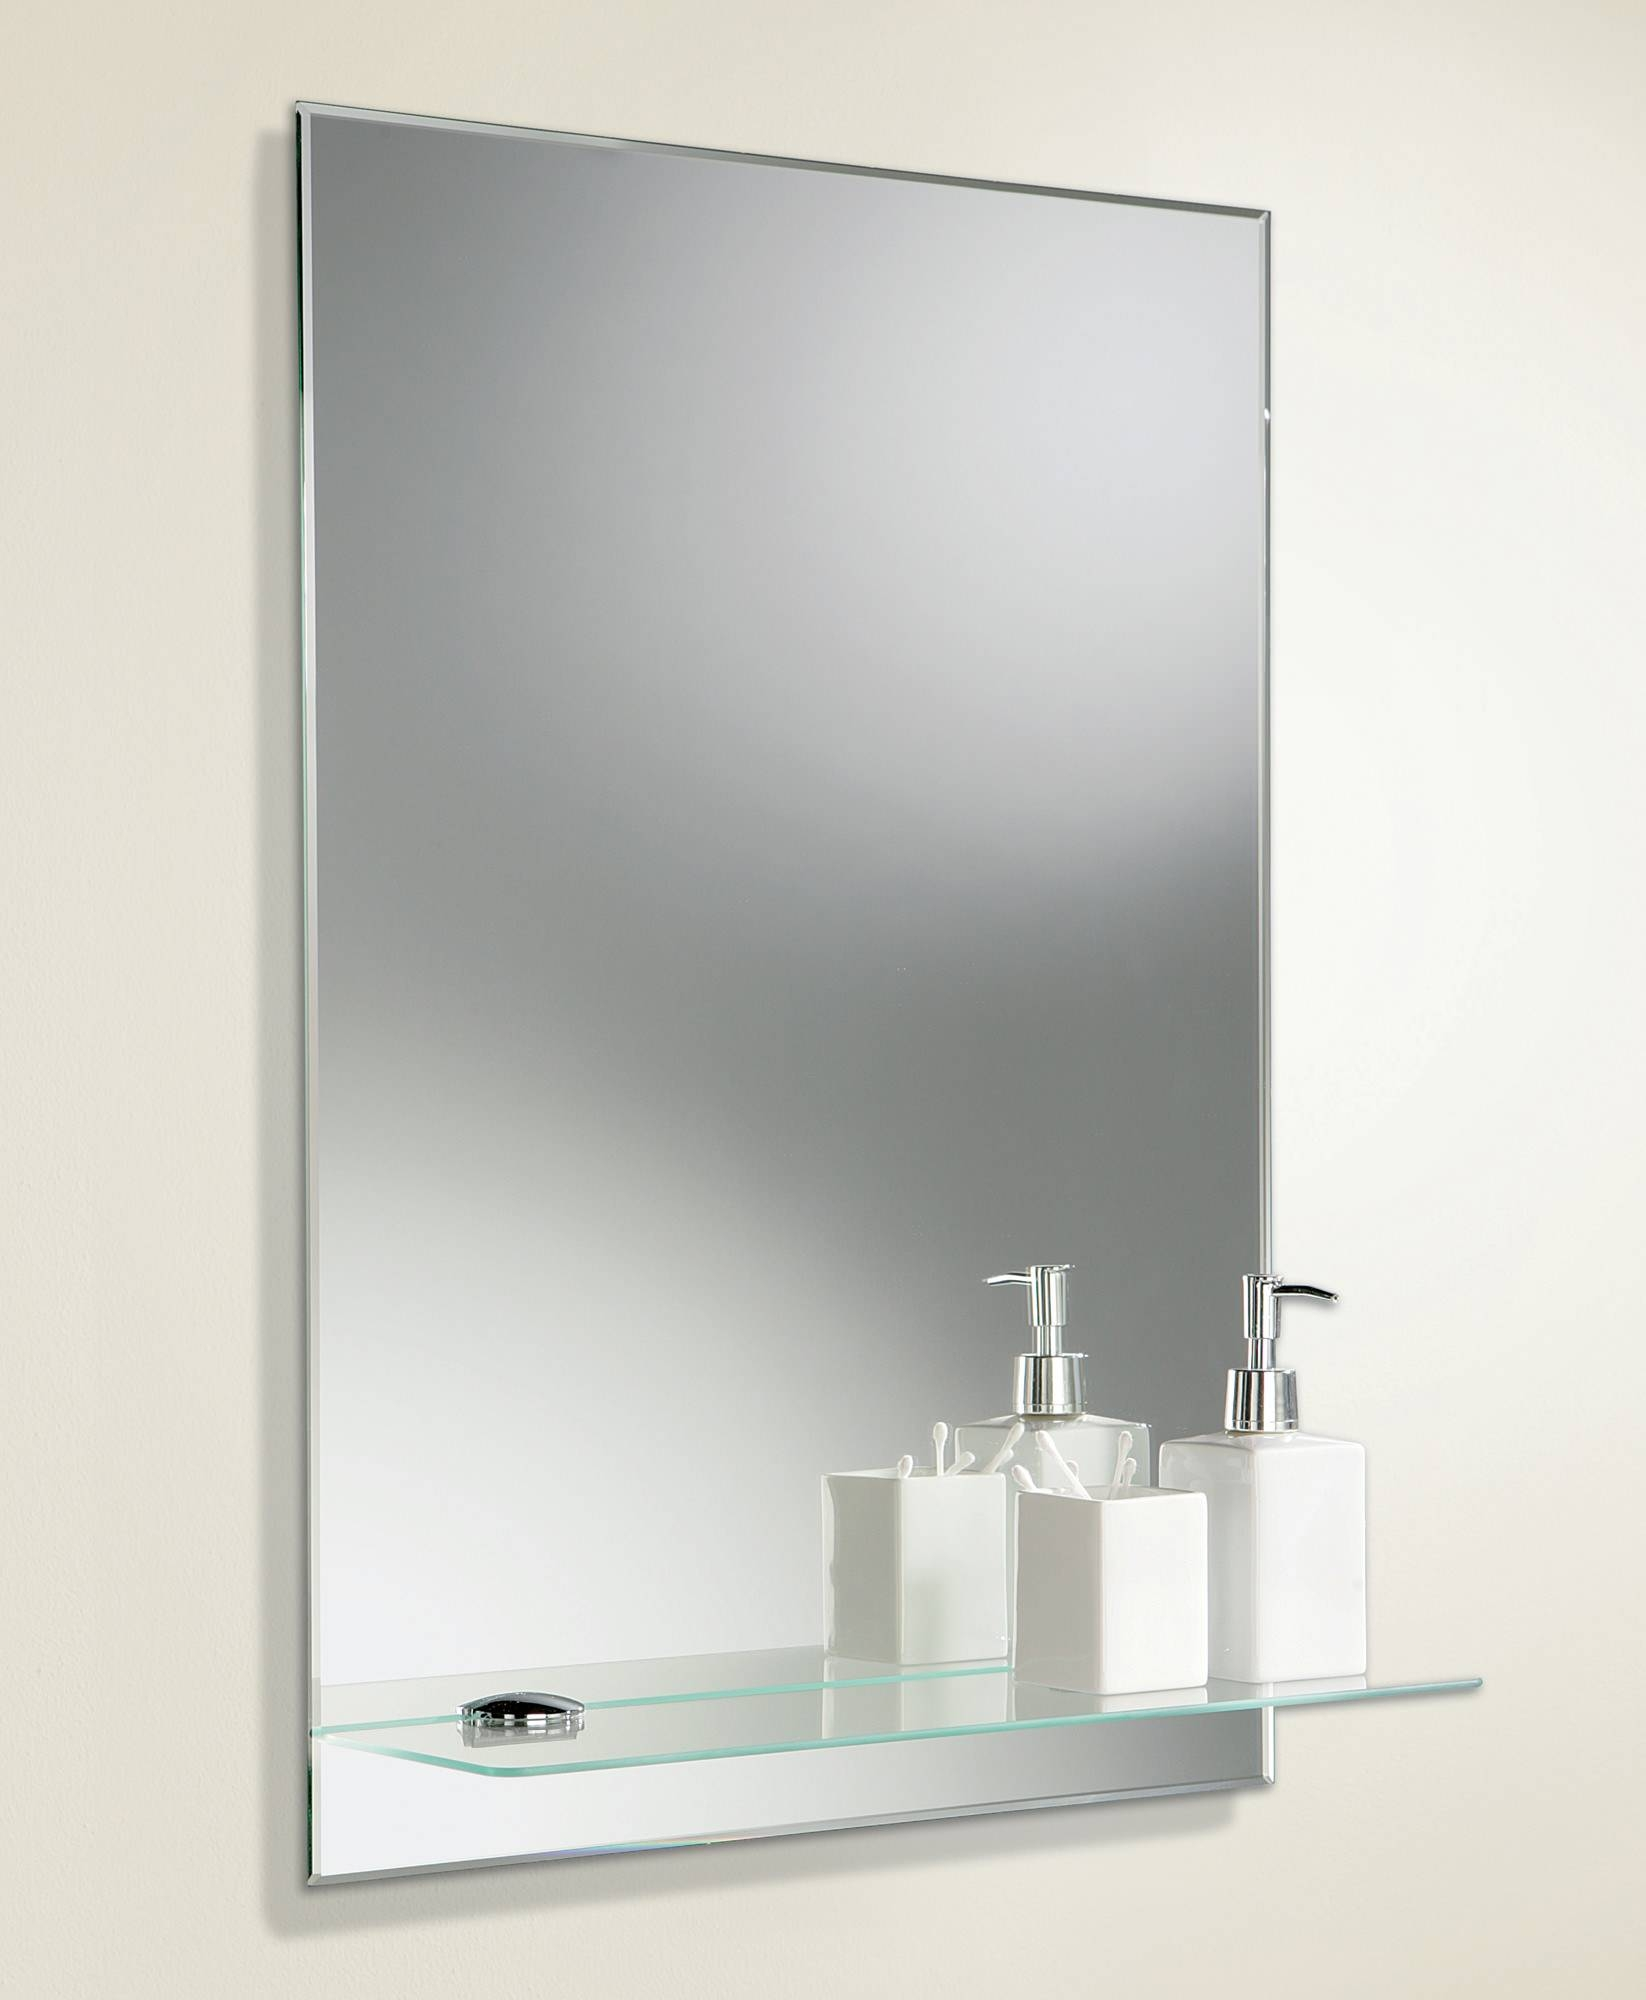 Hib Delby Rectangular Bevelled Edge Mirror With Glass Shelf | 72026000 With Regard To Bevelled Edge Mirrors (View 7 of 15)